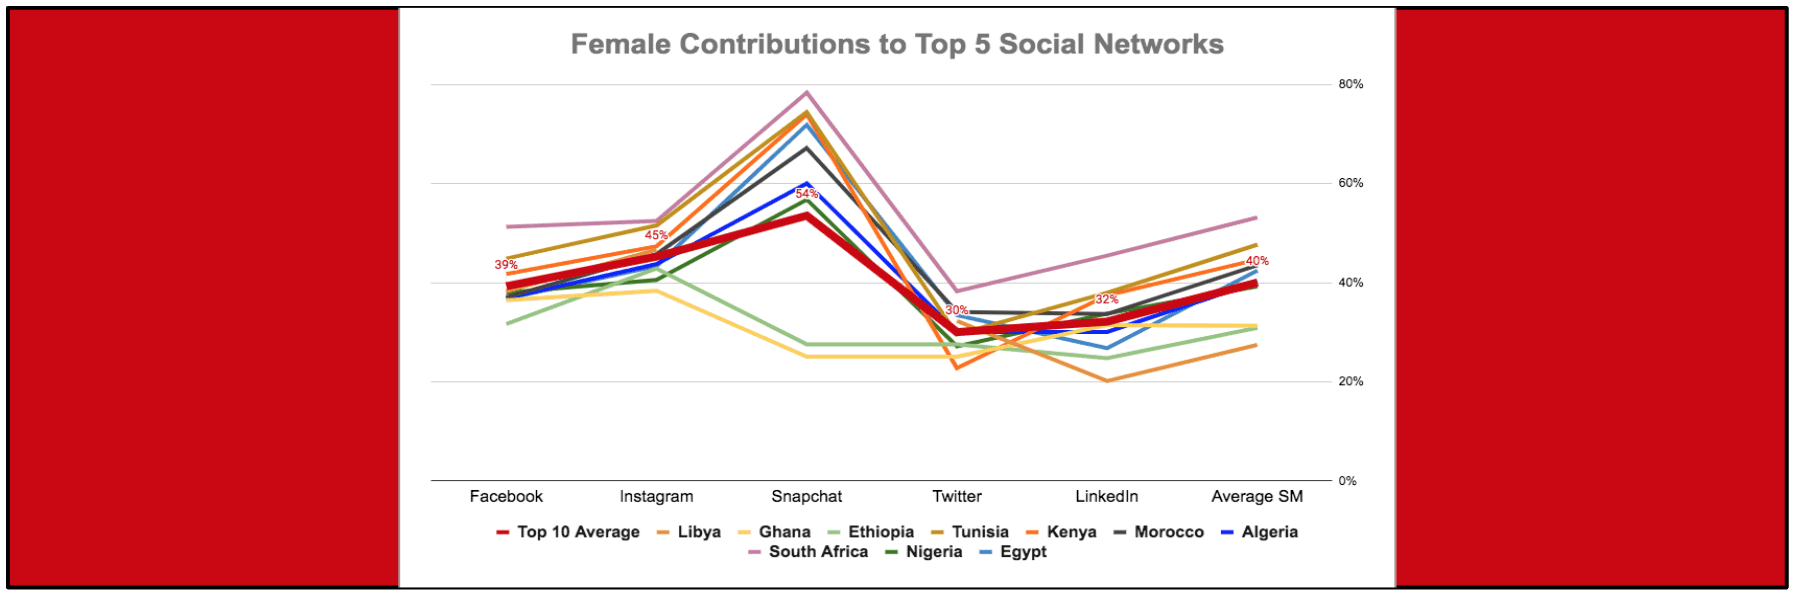 eNitiate | Digital Divide | Global Digital 2020 Report | Female Contributions | 18 Mar 2020 - 2